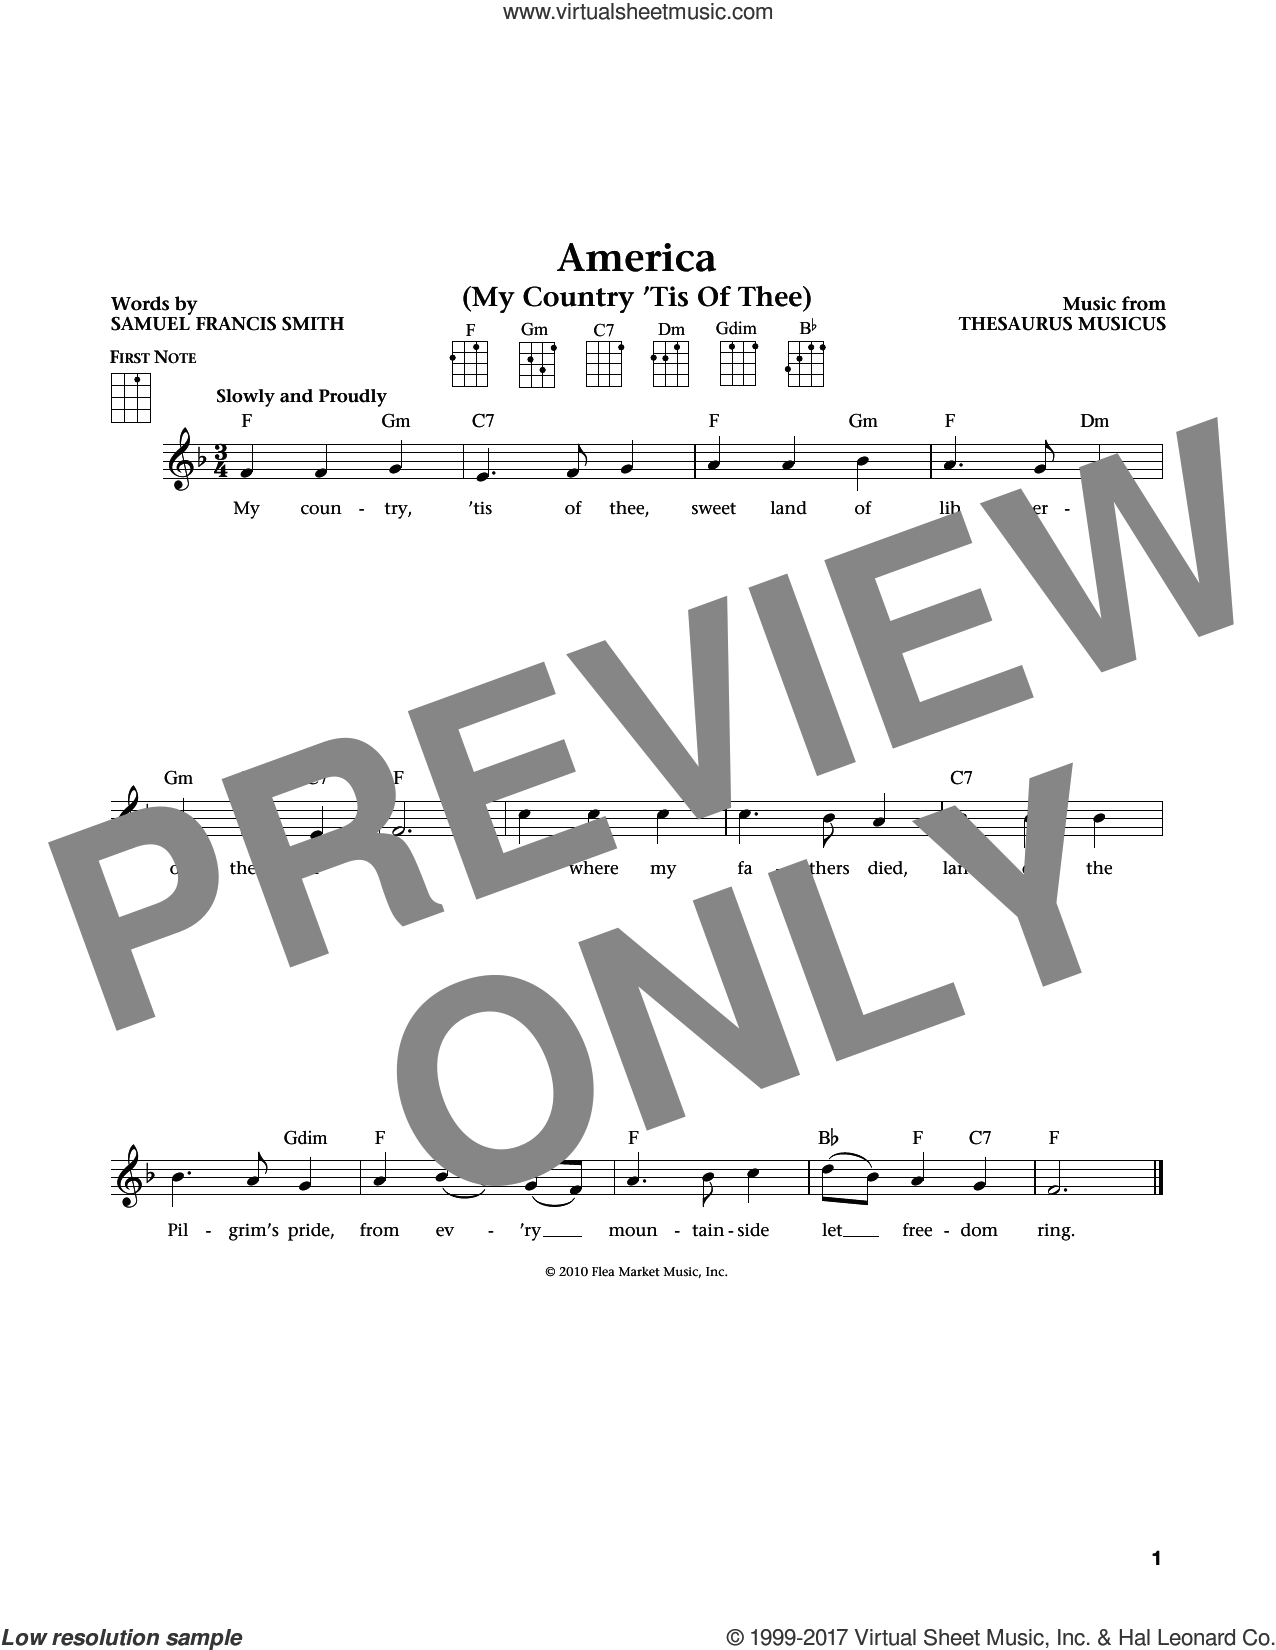 My Country, 'Tis Of Thee (America) (from The Daily Ukulele) (arr. Liz and Jim Beloff) sheet music for ukulele by Thesaurus Musicus, Jim Beloff, Liz Beloff and Samuel Francis Smith, intermediate skill level